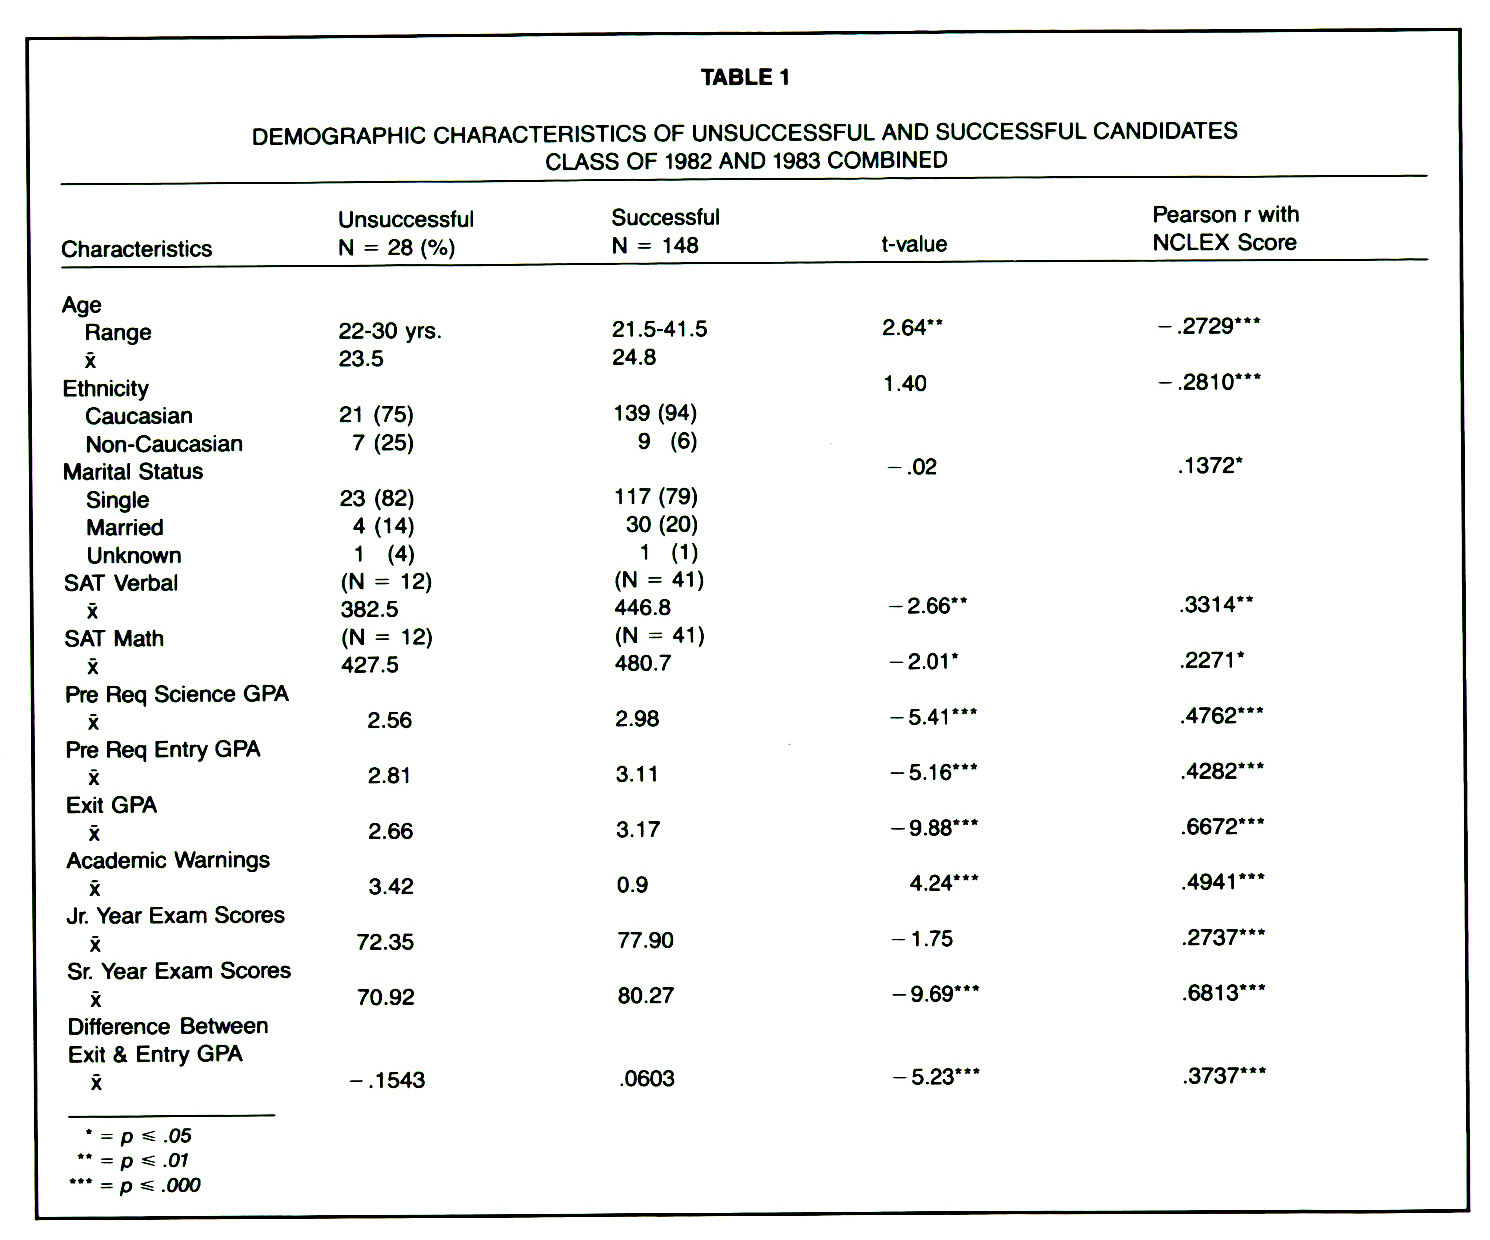 TABLE 1DEMOGRAPHIC CHARACTERISTICS OF UNSUCCESSFUL AND SUCCESSFUL CANDIDATES CLASS OF 1982 AND 1983 COMBINED